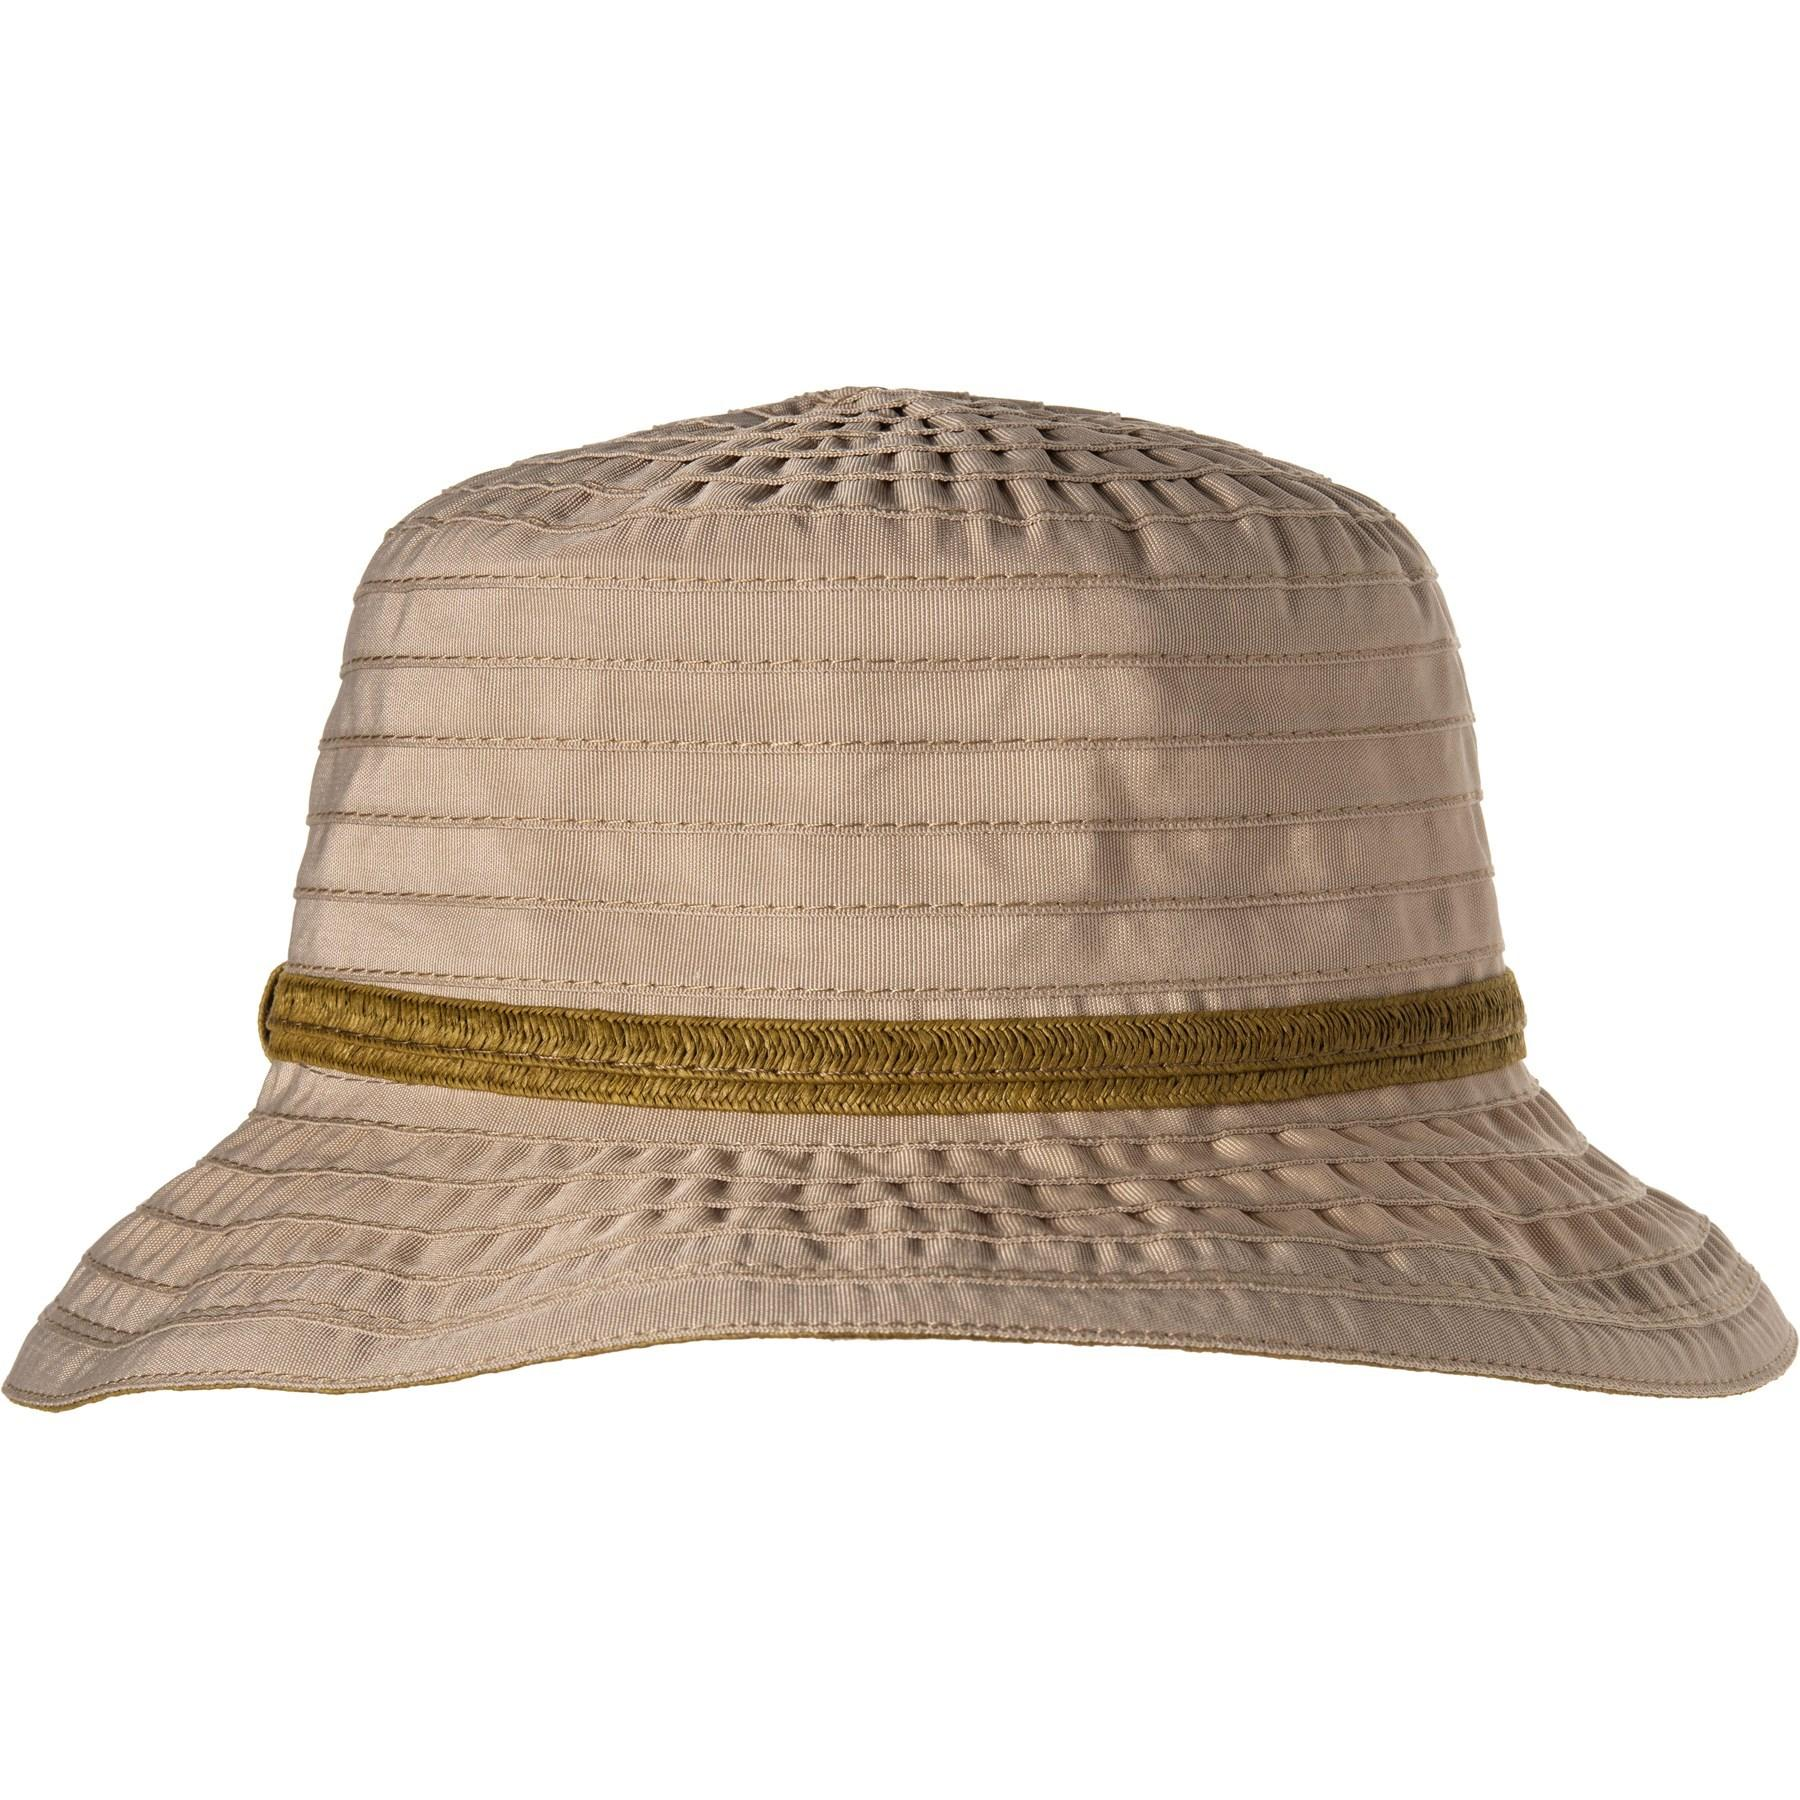 445e48f0e Lyst - Dorfman Pacific Acad Ribbon Bucket Hat With Trim (for Women)